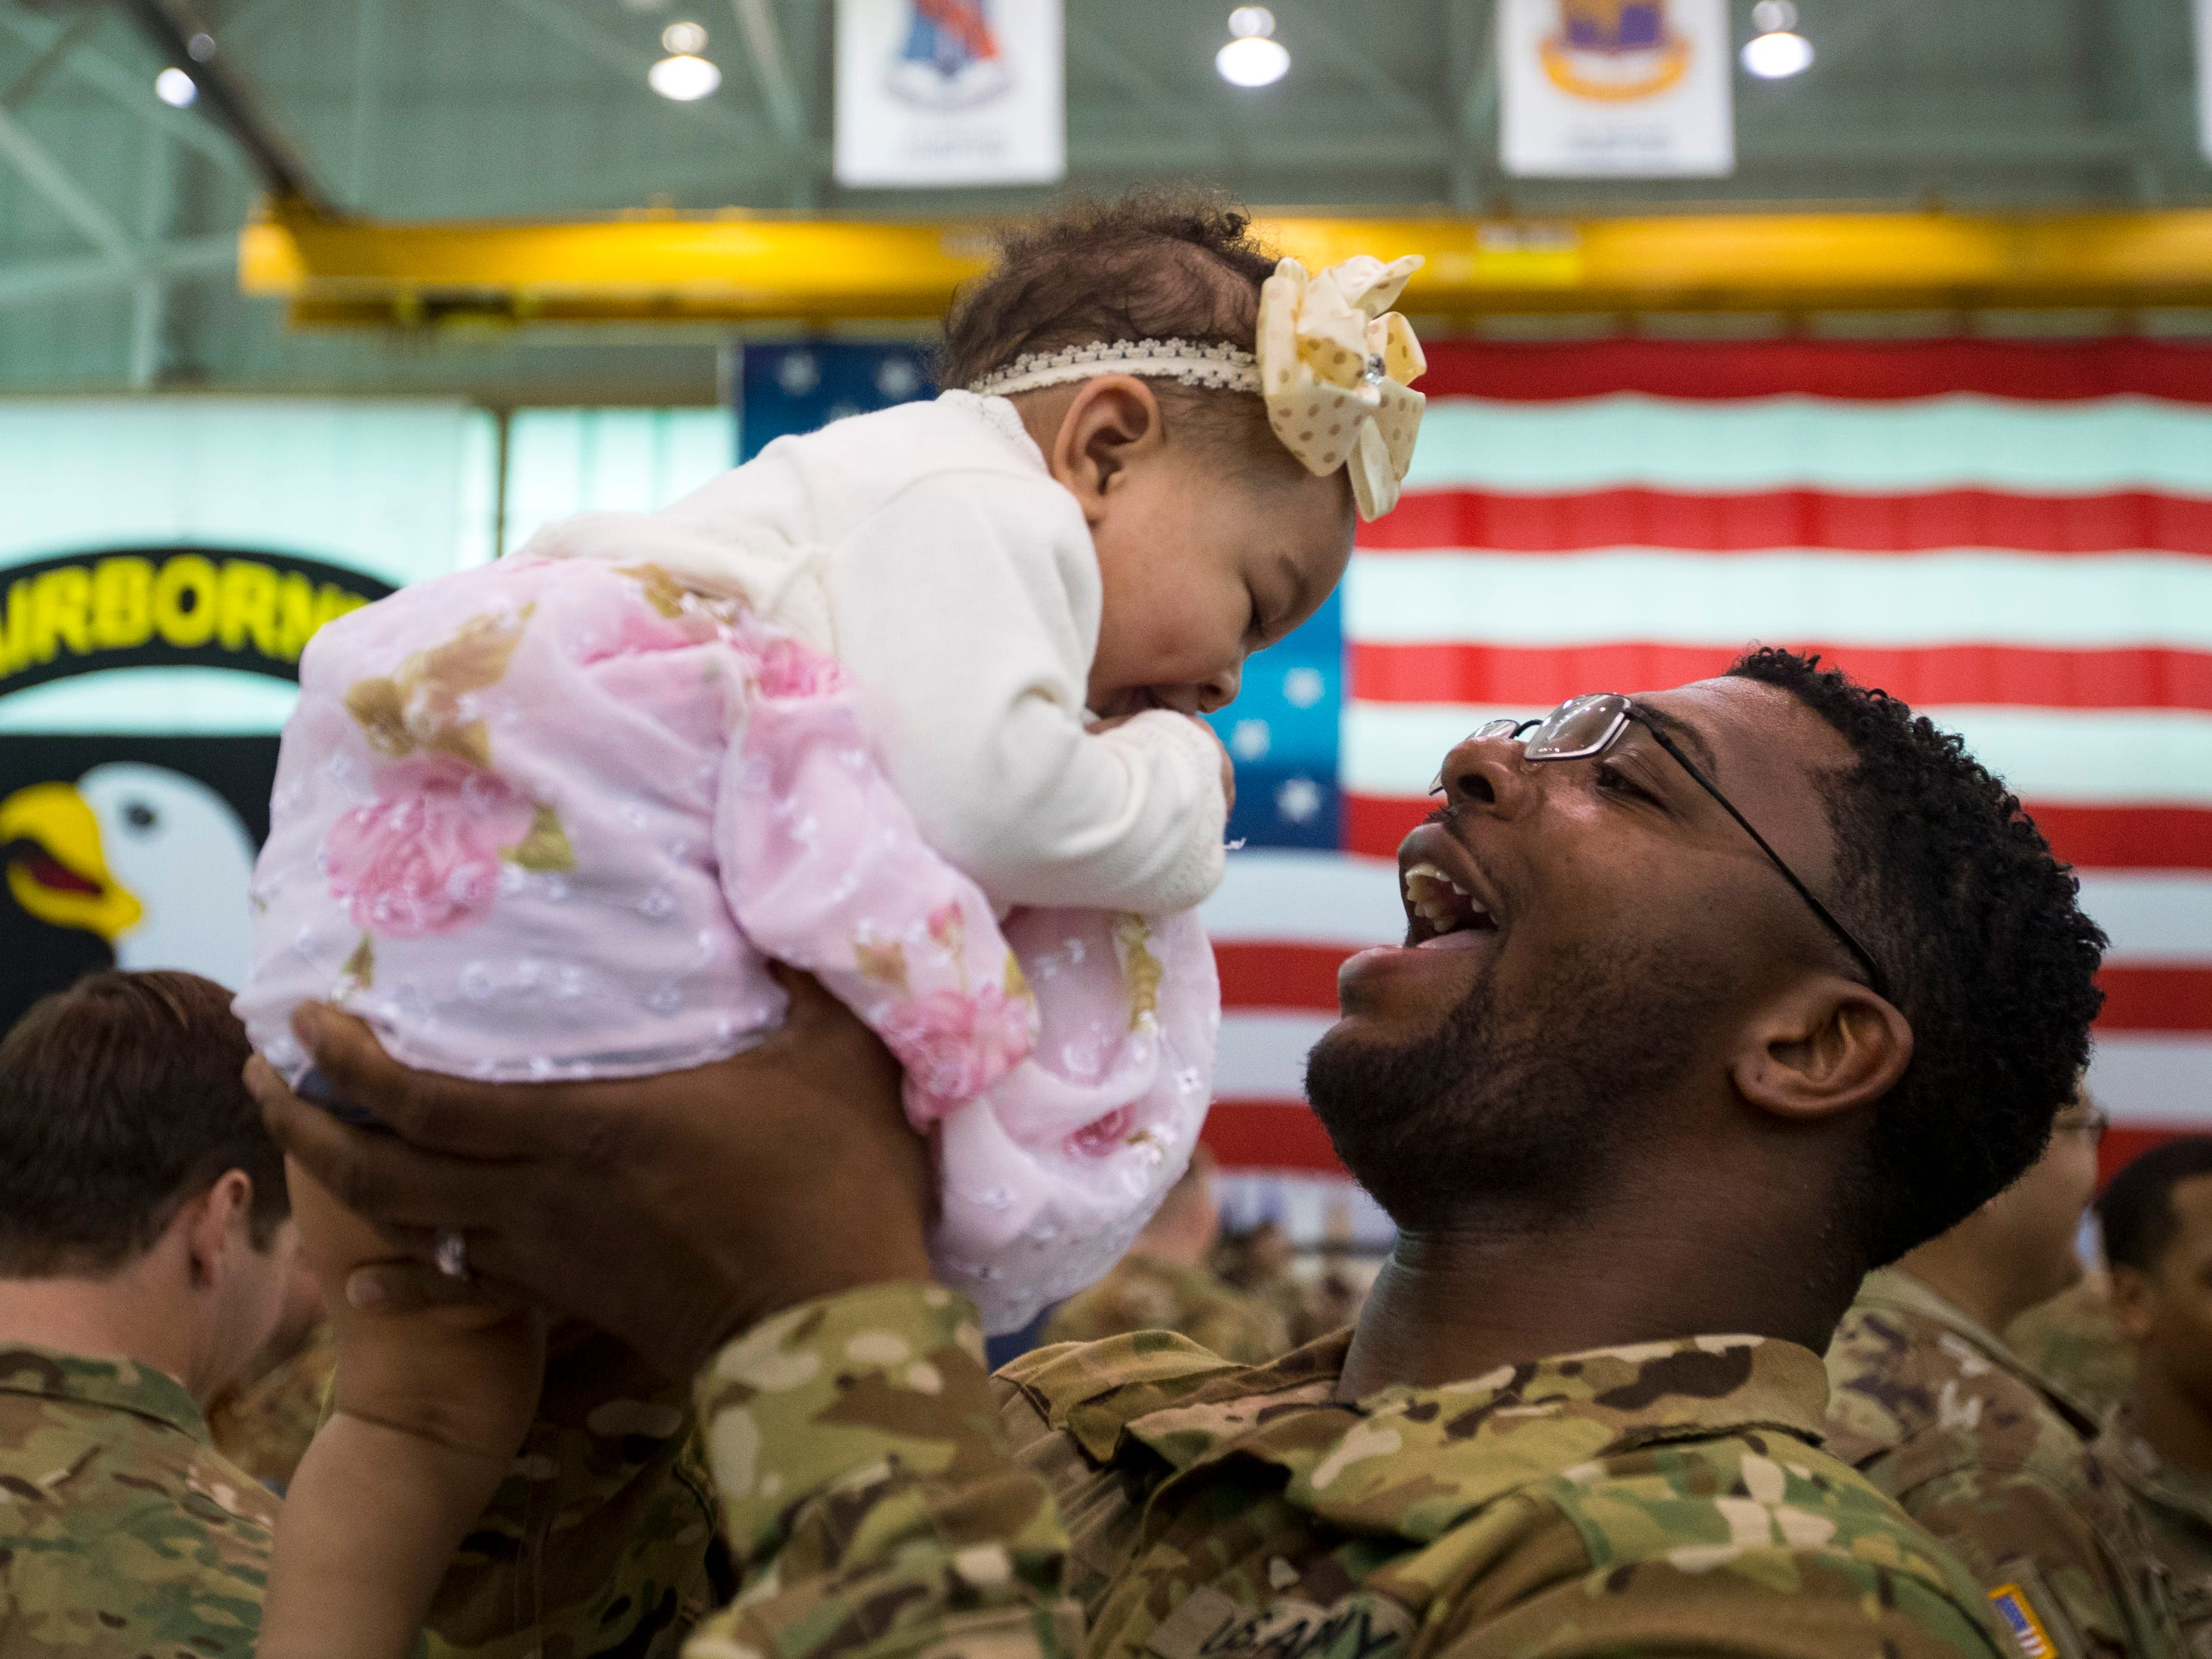 Armani Steele holds his daughter Aria Steele, 6 months, during the welcome home ceremony for members of the 101st Combat Aviation Brigade at Fort Campbell in Clarksville on Tuesday, Feb. 5, 2019. The soldiers were returning from a nine-month deployment to Afghanistan.